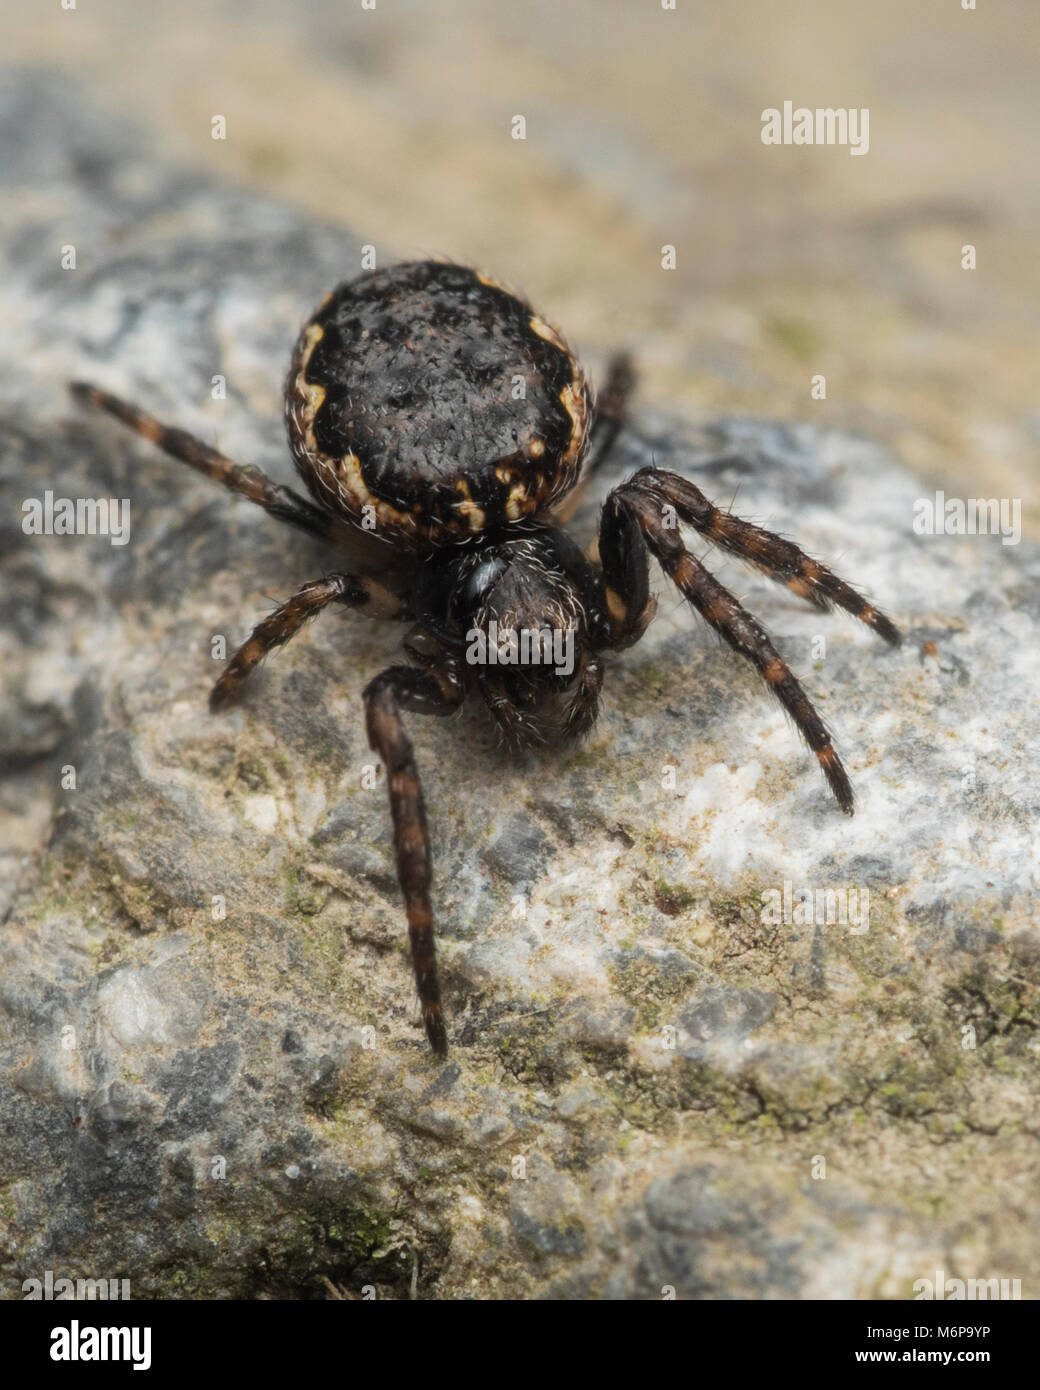 Walnut Orb Weaver spider (Nuctenea umbratica) resting on a stone. Tipperary, Ireland - Stock Image